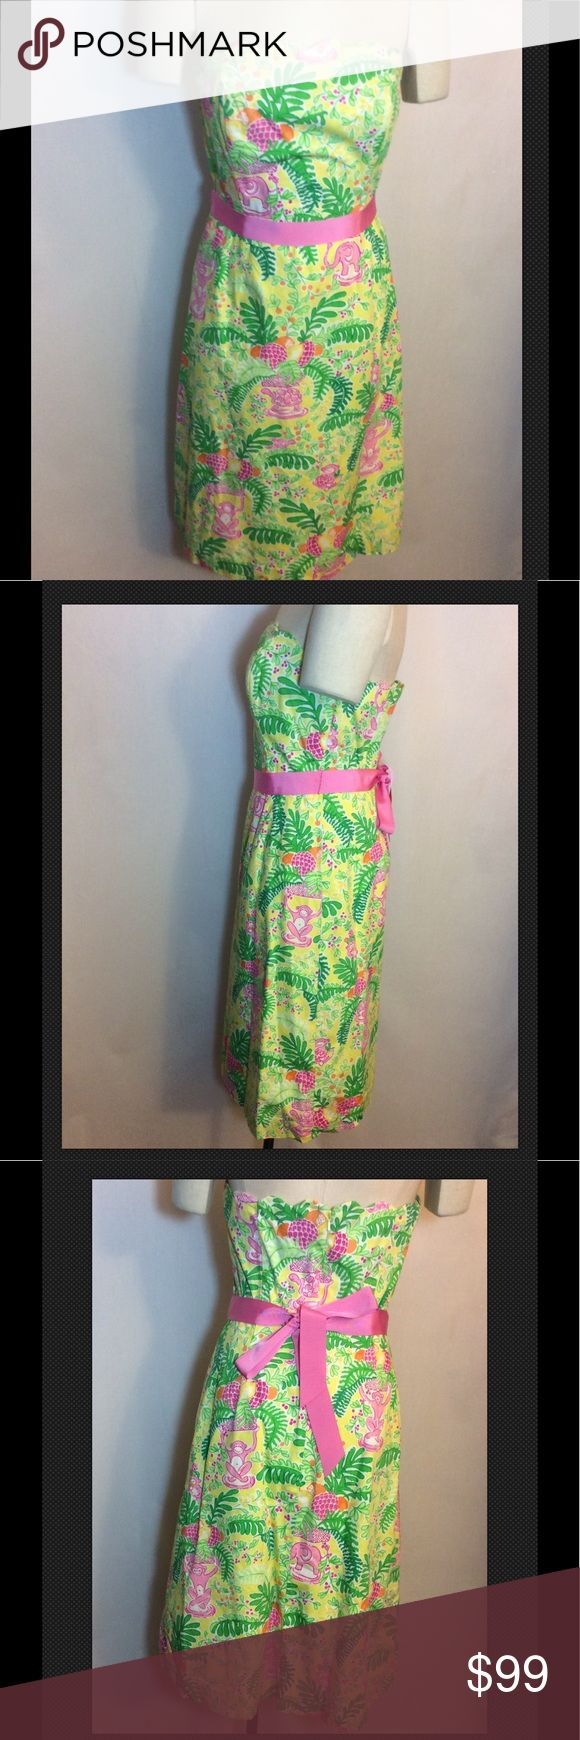 """Lilly Pulitzer Touchy Feely Yellow Strapless 8 EUC Lilly Pulitzer Touchy Feely 2012 Yellow Cotton Strapless Size 8 EUC Such a happy shade of yellow with hot pink and hades of green, white and orange. The body is 100% cotton lined in a poly Cotton Blend.  Strapless with a scalloped top and silicone banding to hold it up with boning at sides. Wide pink ribbon tie and zipper 11-1/2"""" long in the back. It is a size 8 and measures 27"""" at empire waist, 4"""" at the chest and 32"""" long measured in back…"""